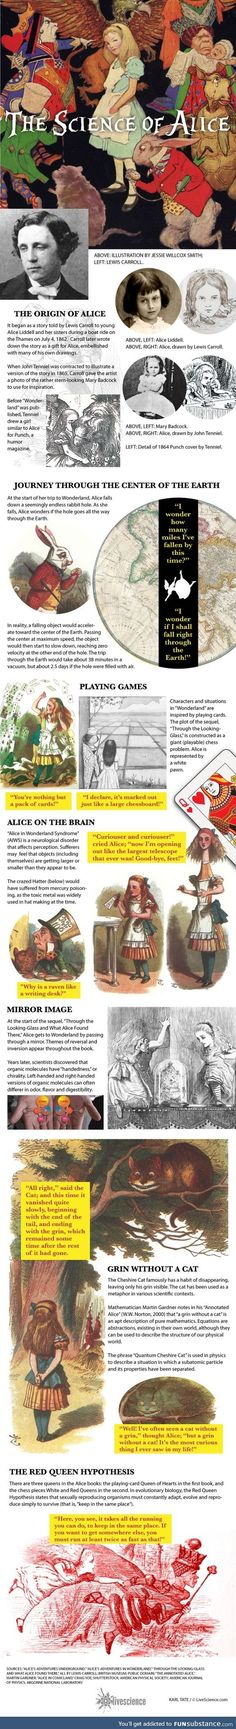 Ideas quotes alice in wonderland lewis carroll movies Alice In Wonderland Syndrome, Alice In Wonderland Party, Adventures In Wonderland, Alice In Wonderland Background, Bad Trip, Go Ask Alice, Dear Alice, Chesire Cat, Were All Mad Here